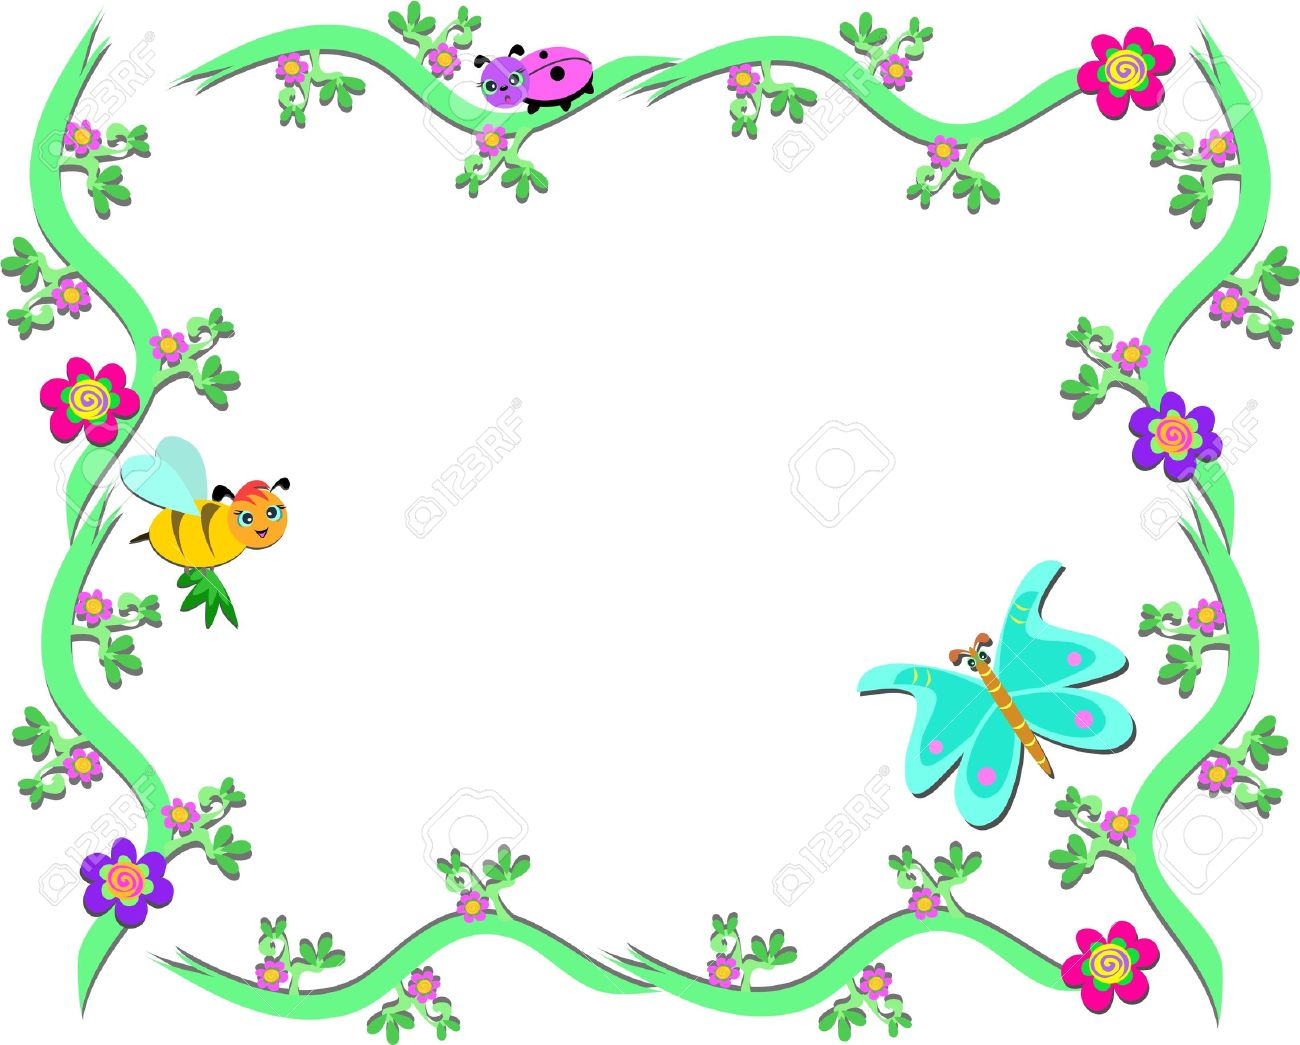 Butterfly frame clipart banner royalty free download Butterflies Clipart Border | Free download best Butterflies Clipart ... banner royalty free download